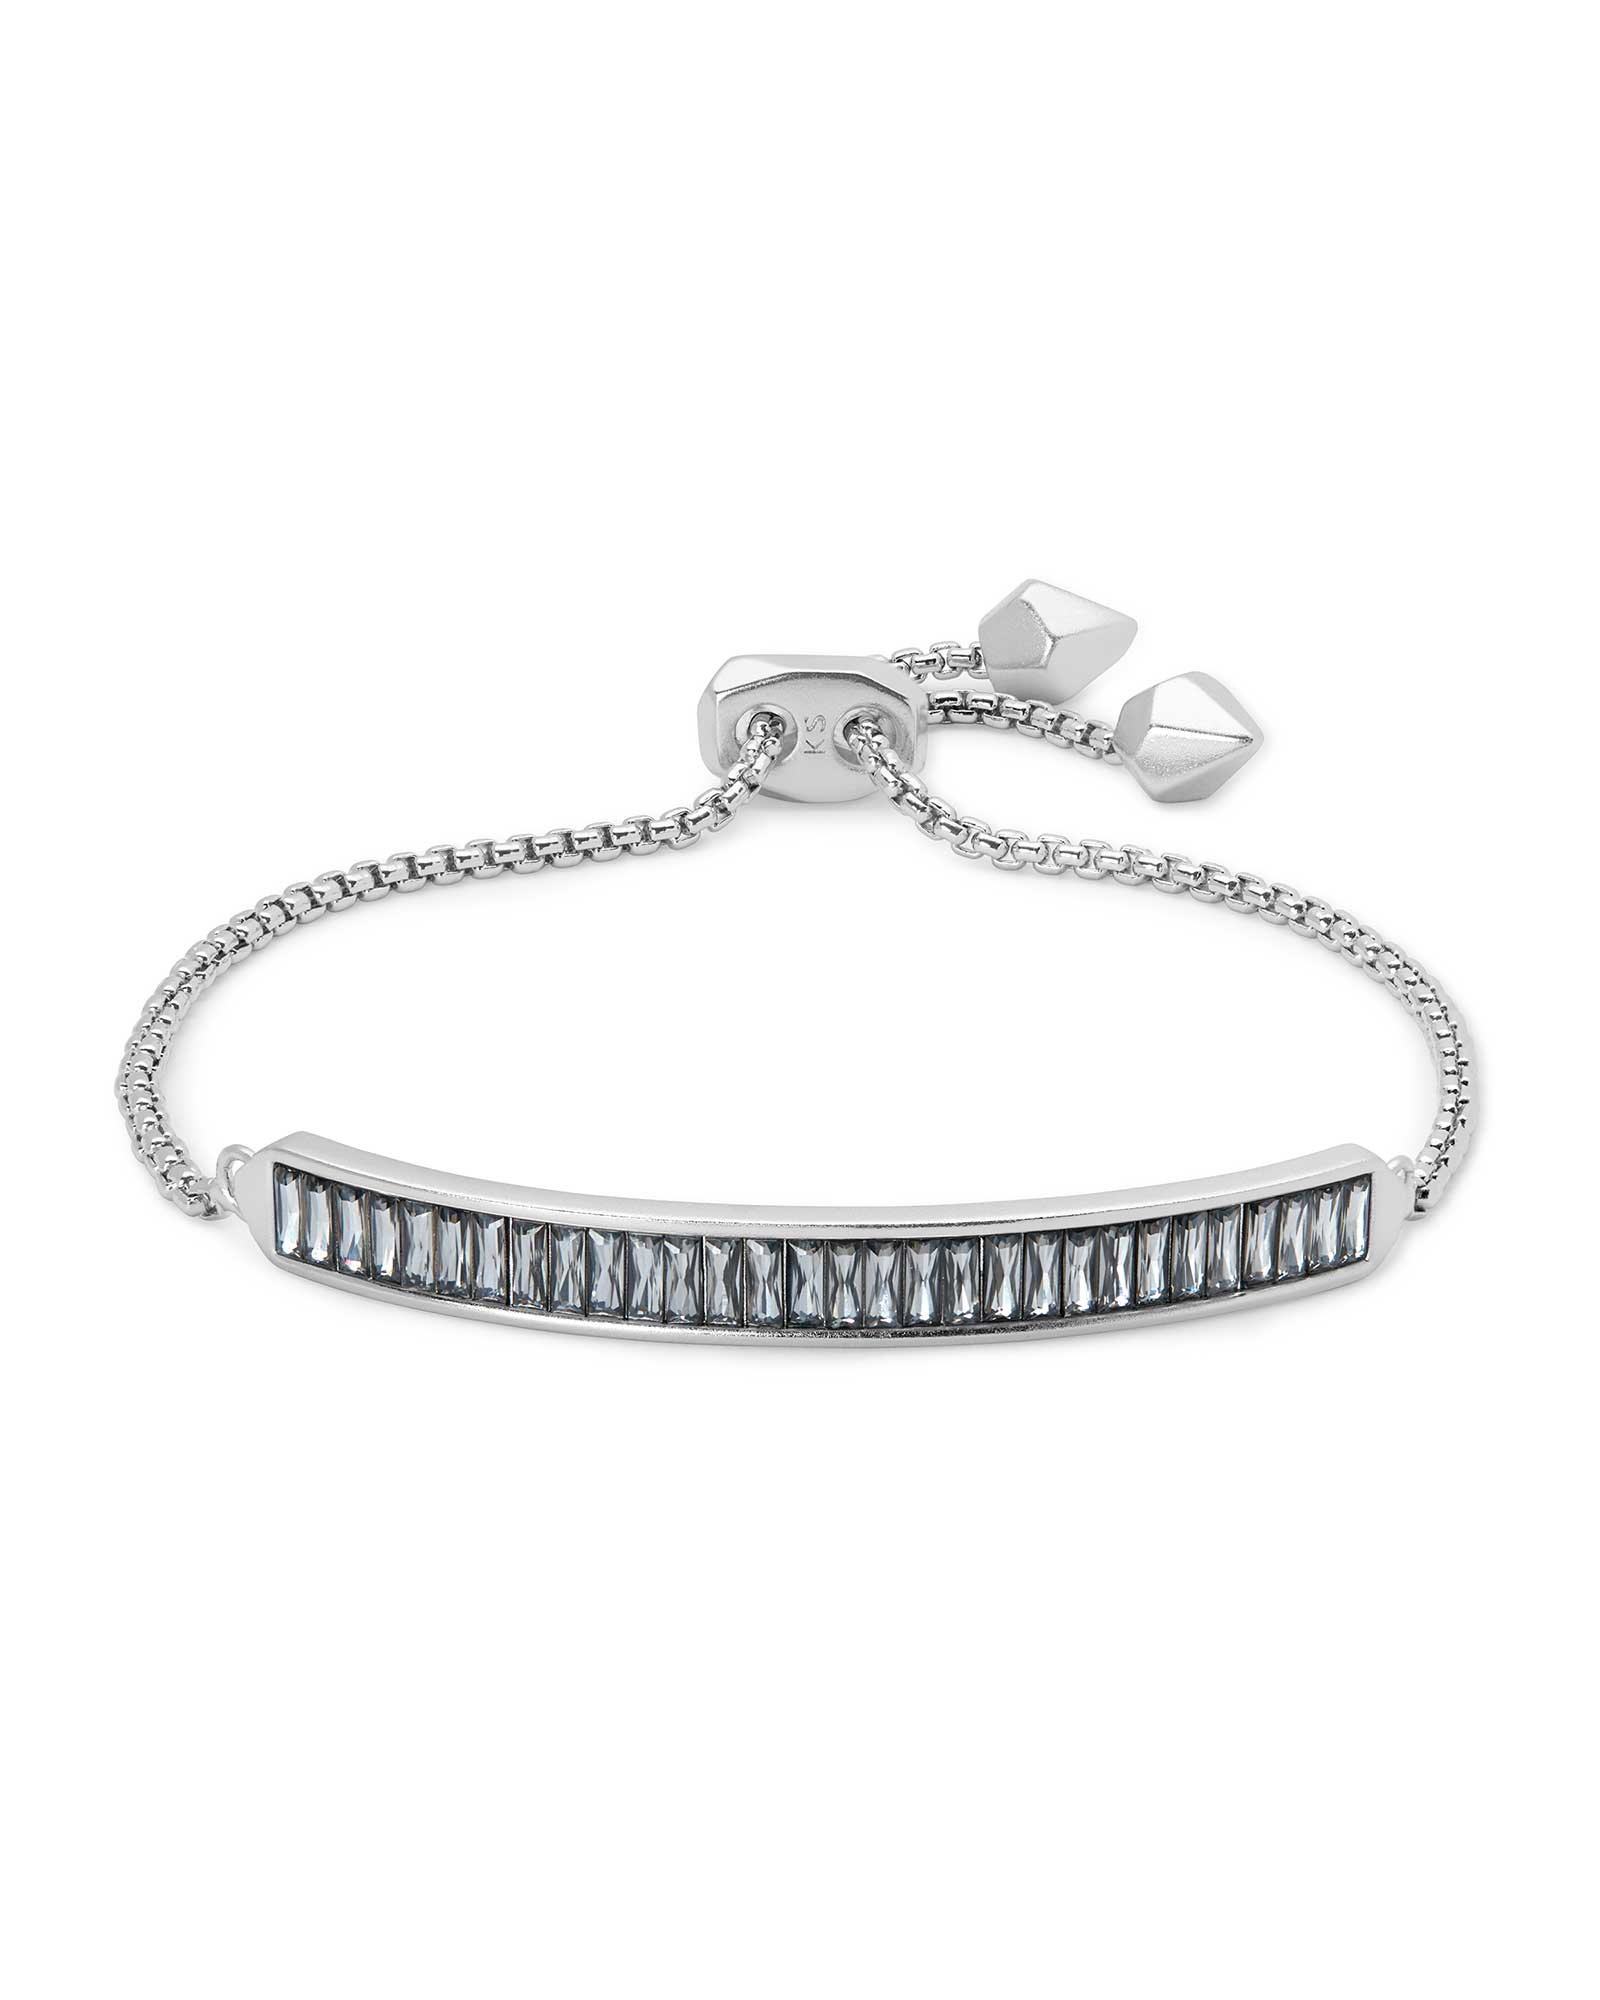 Jack Adjustable Silver Chain Bracelet in Charcoal Gray Crystal